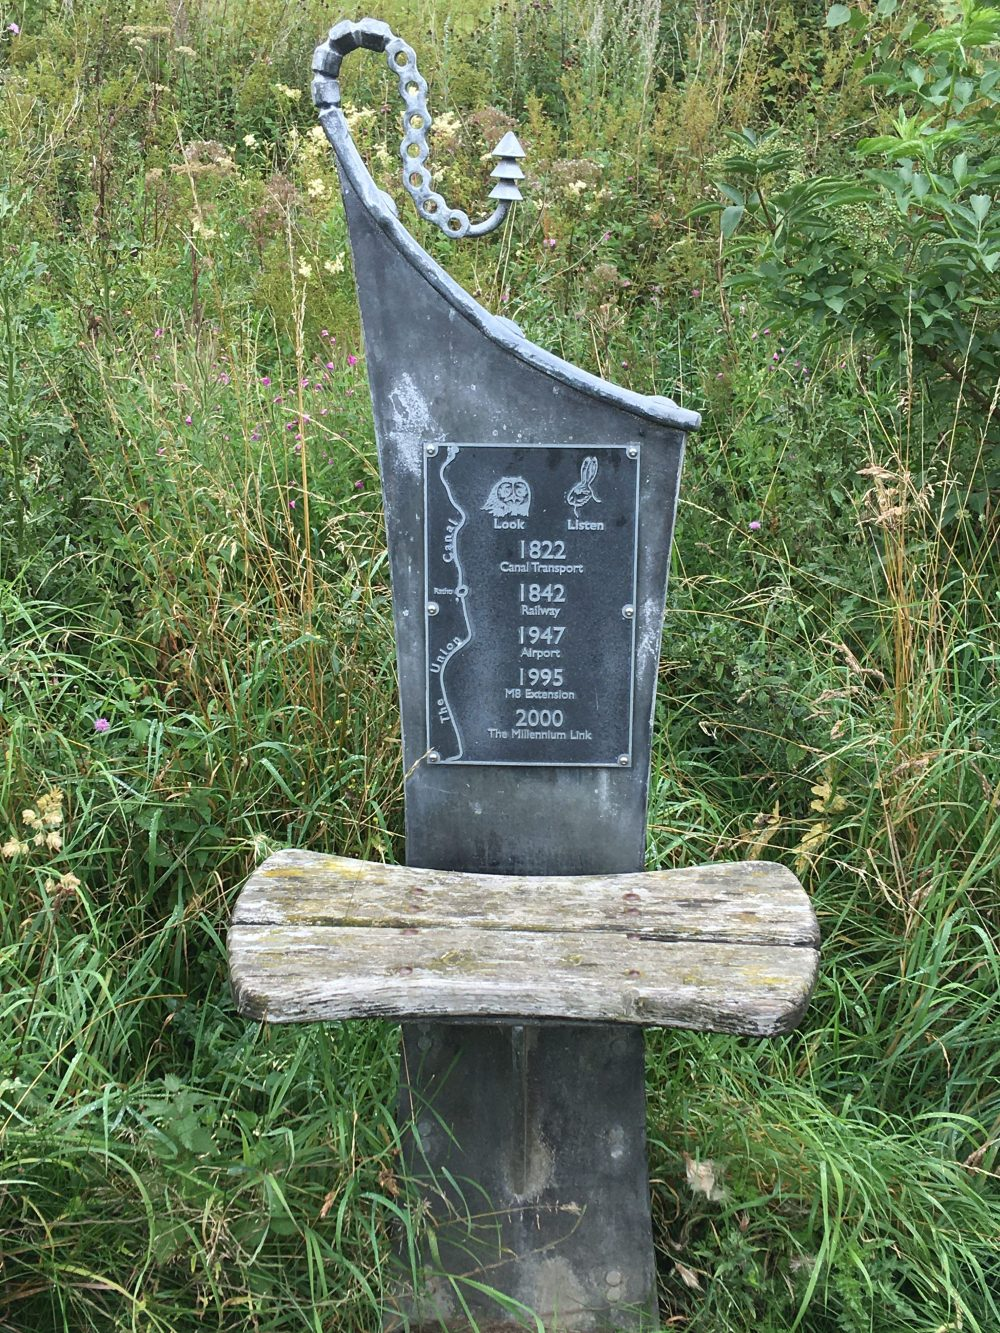 642 Ratho canal sign